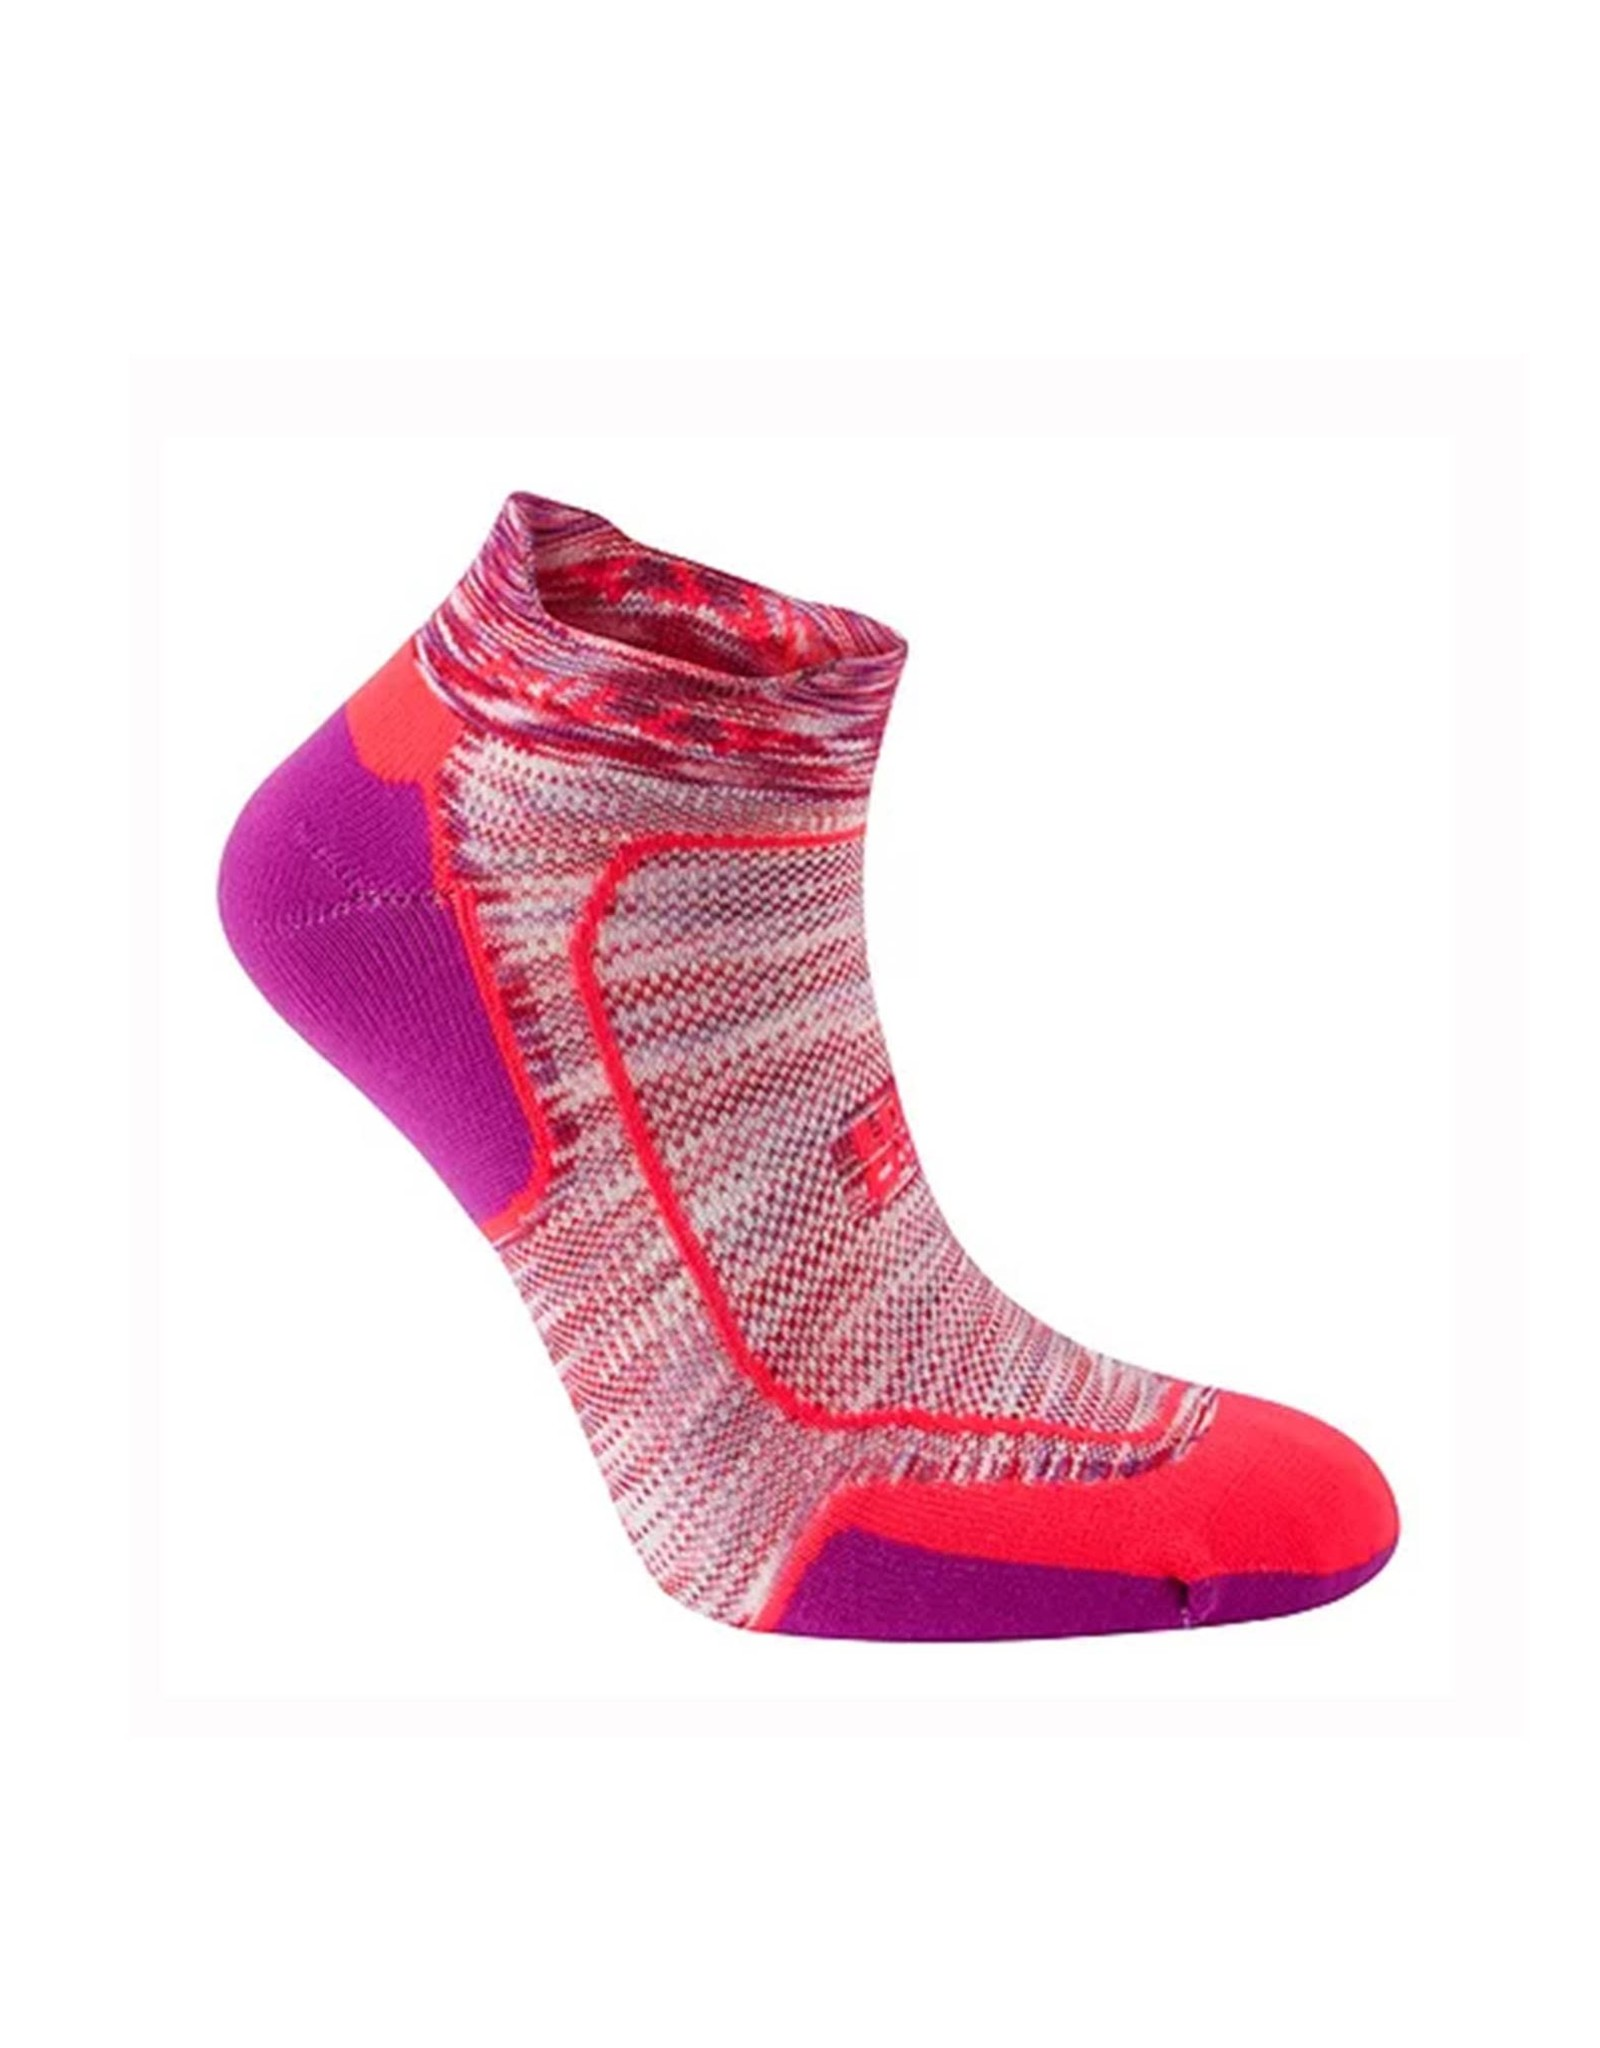 HILLY Hilly Lite Womans Cycling Running Socks